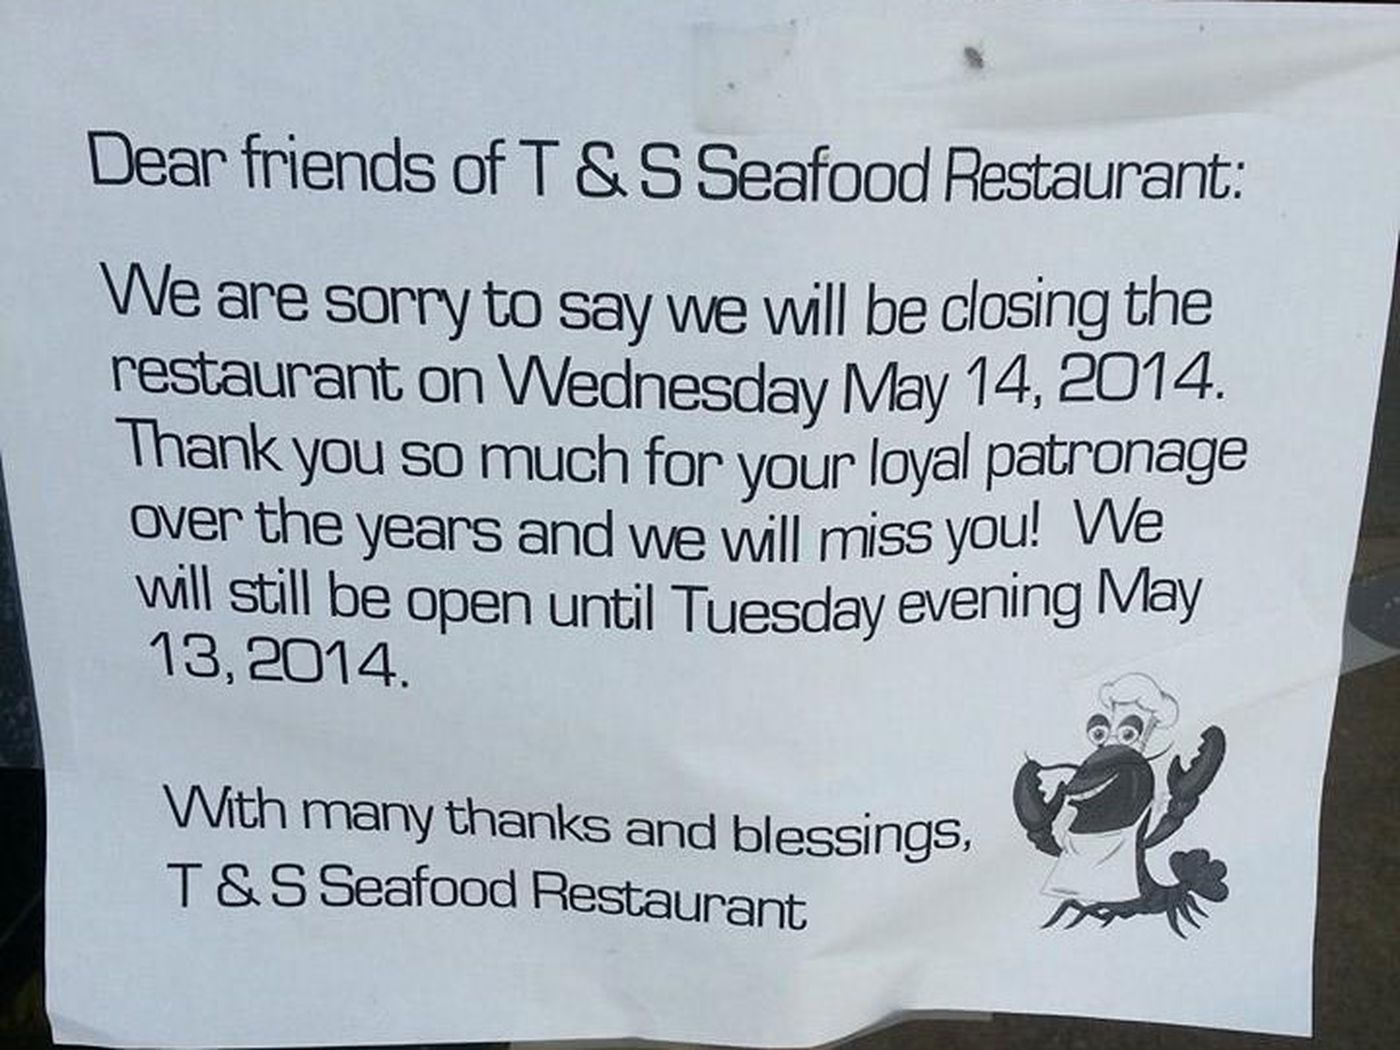 Dim Sum Destination T & S Seafood to Shutter on May 14 - Eater Austin